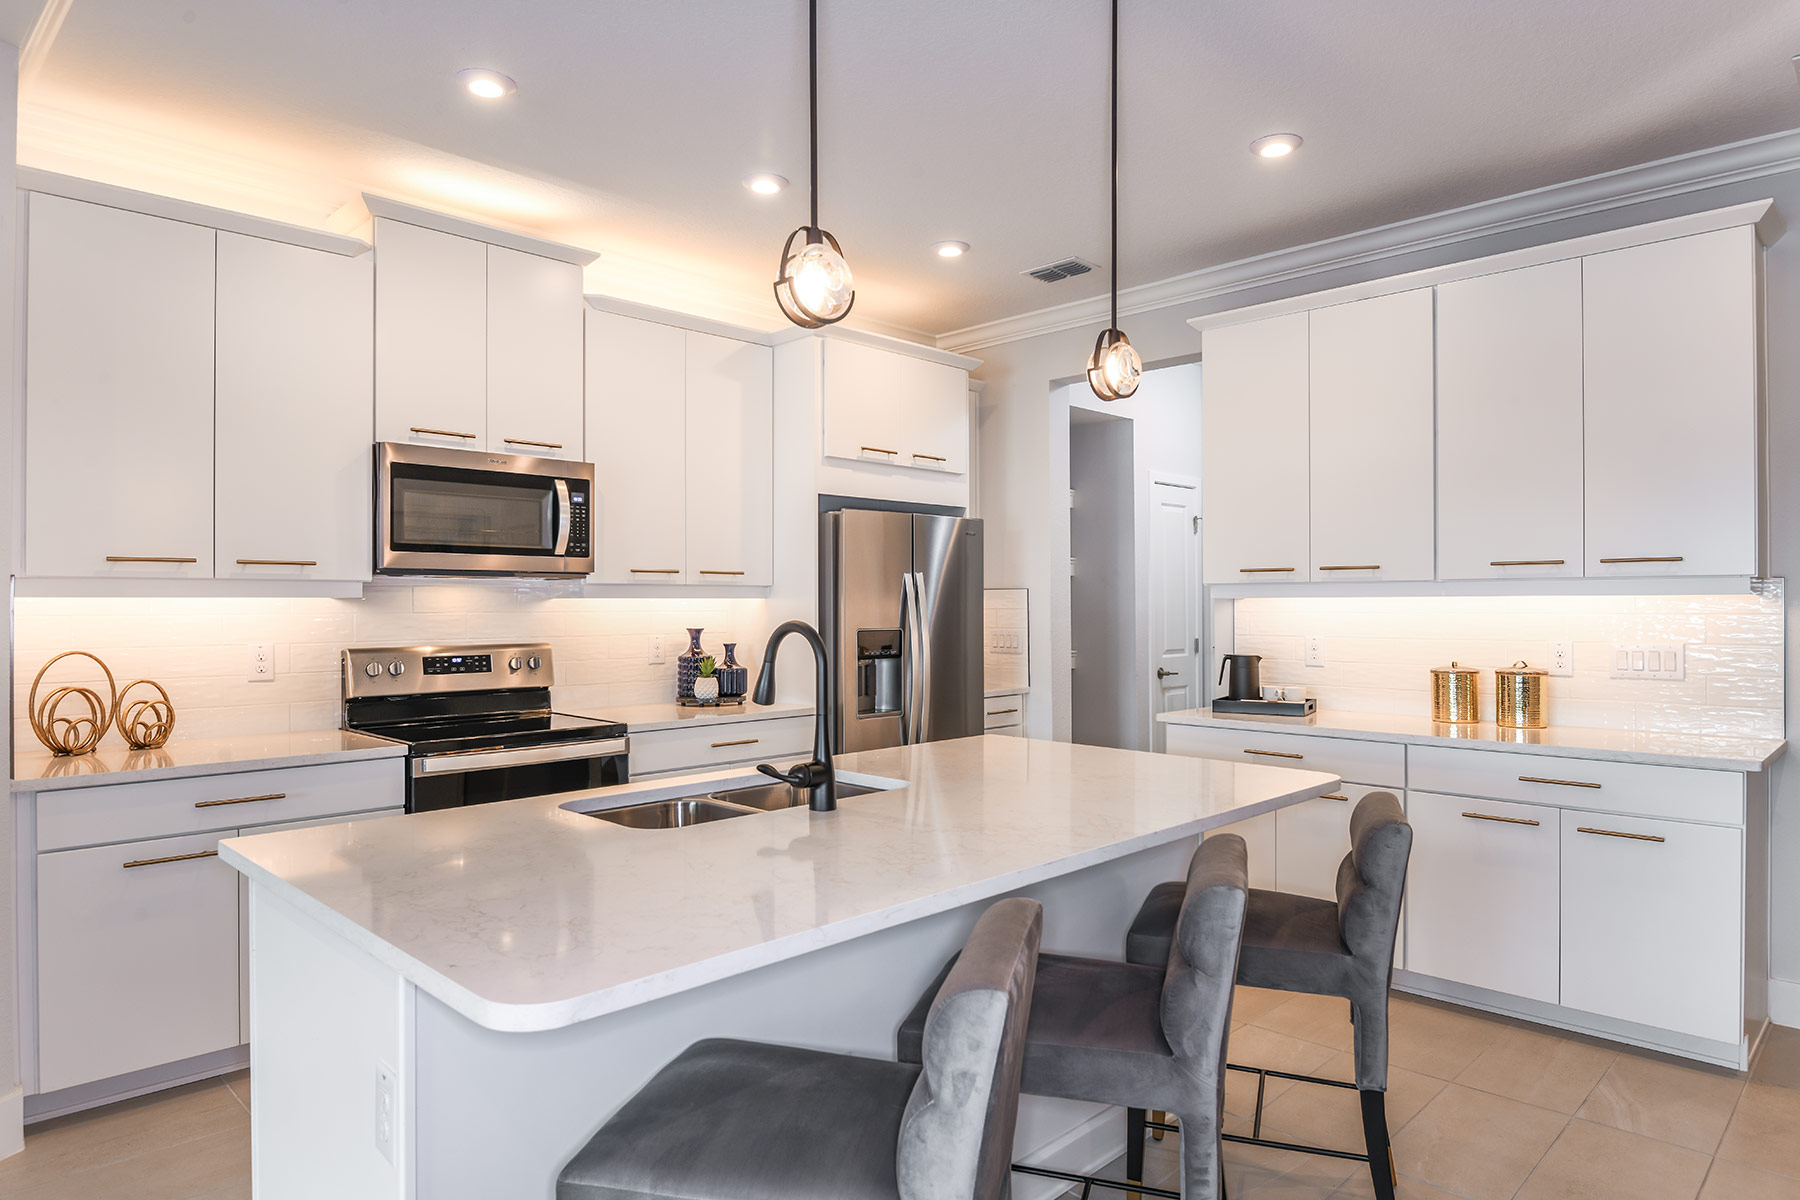 Kitchen in Kitchener-Waterloo Ontario by Mattamy Homes